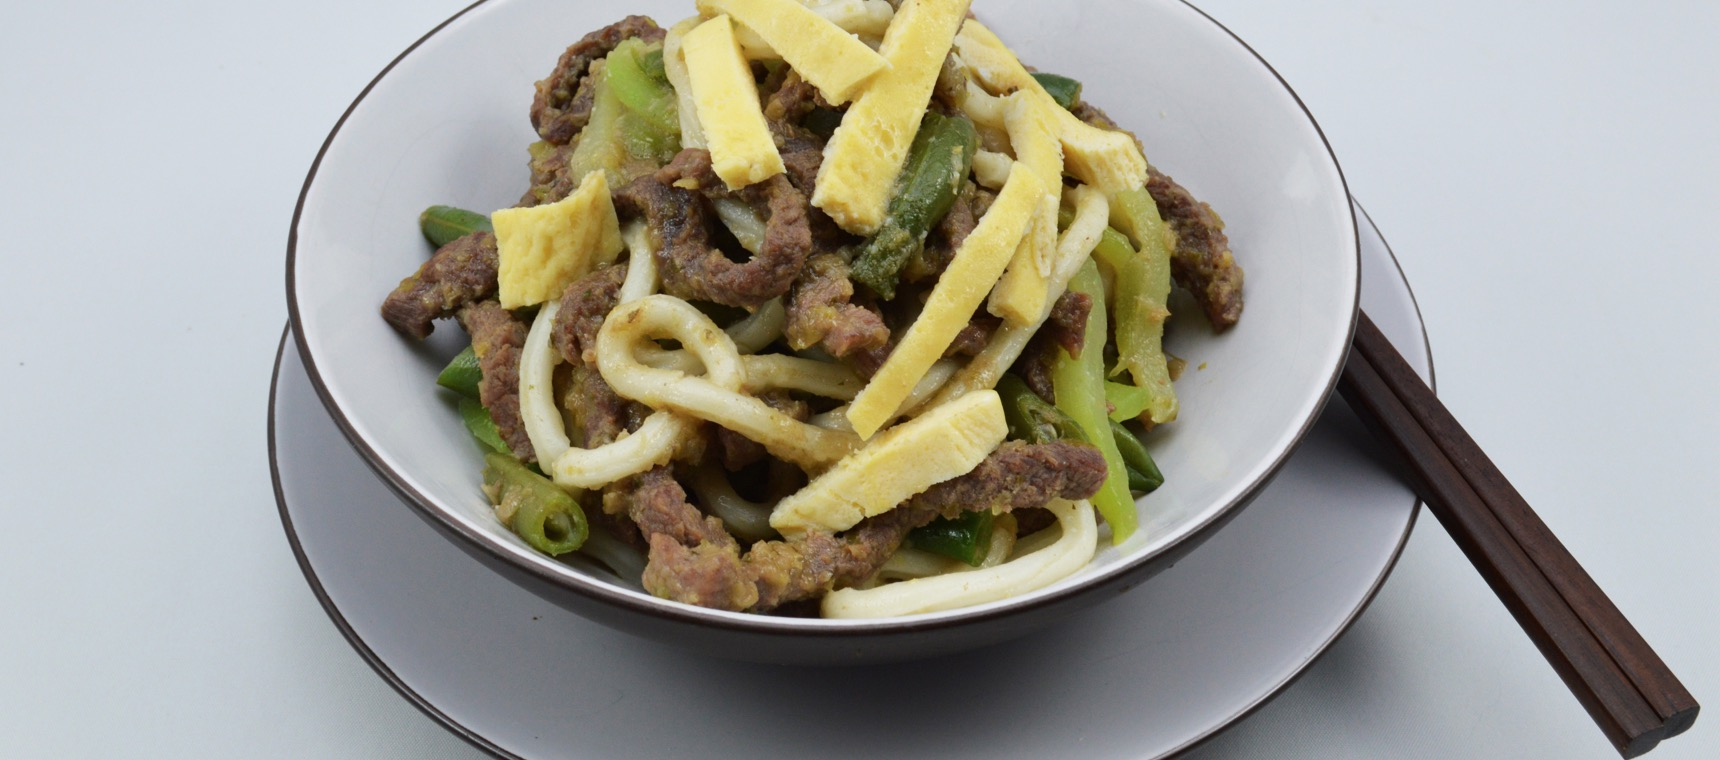 Beef Stir Fry with Udon Noodles